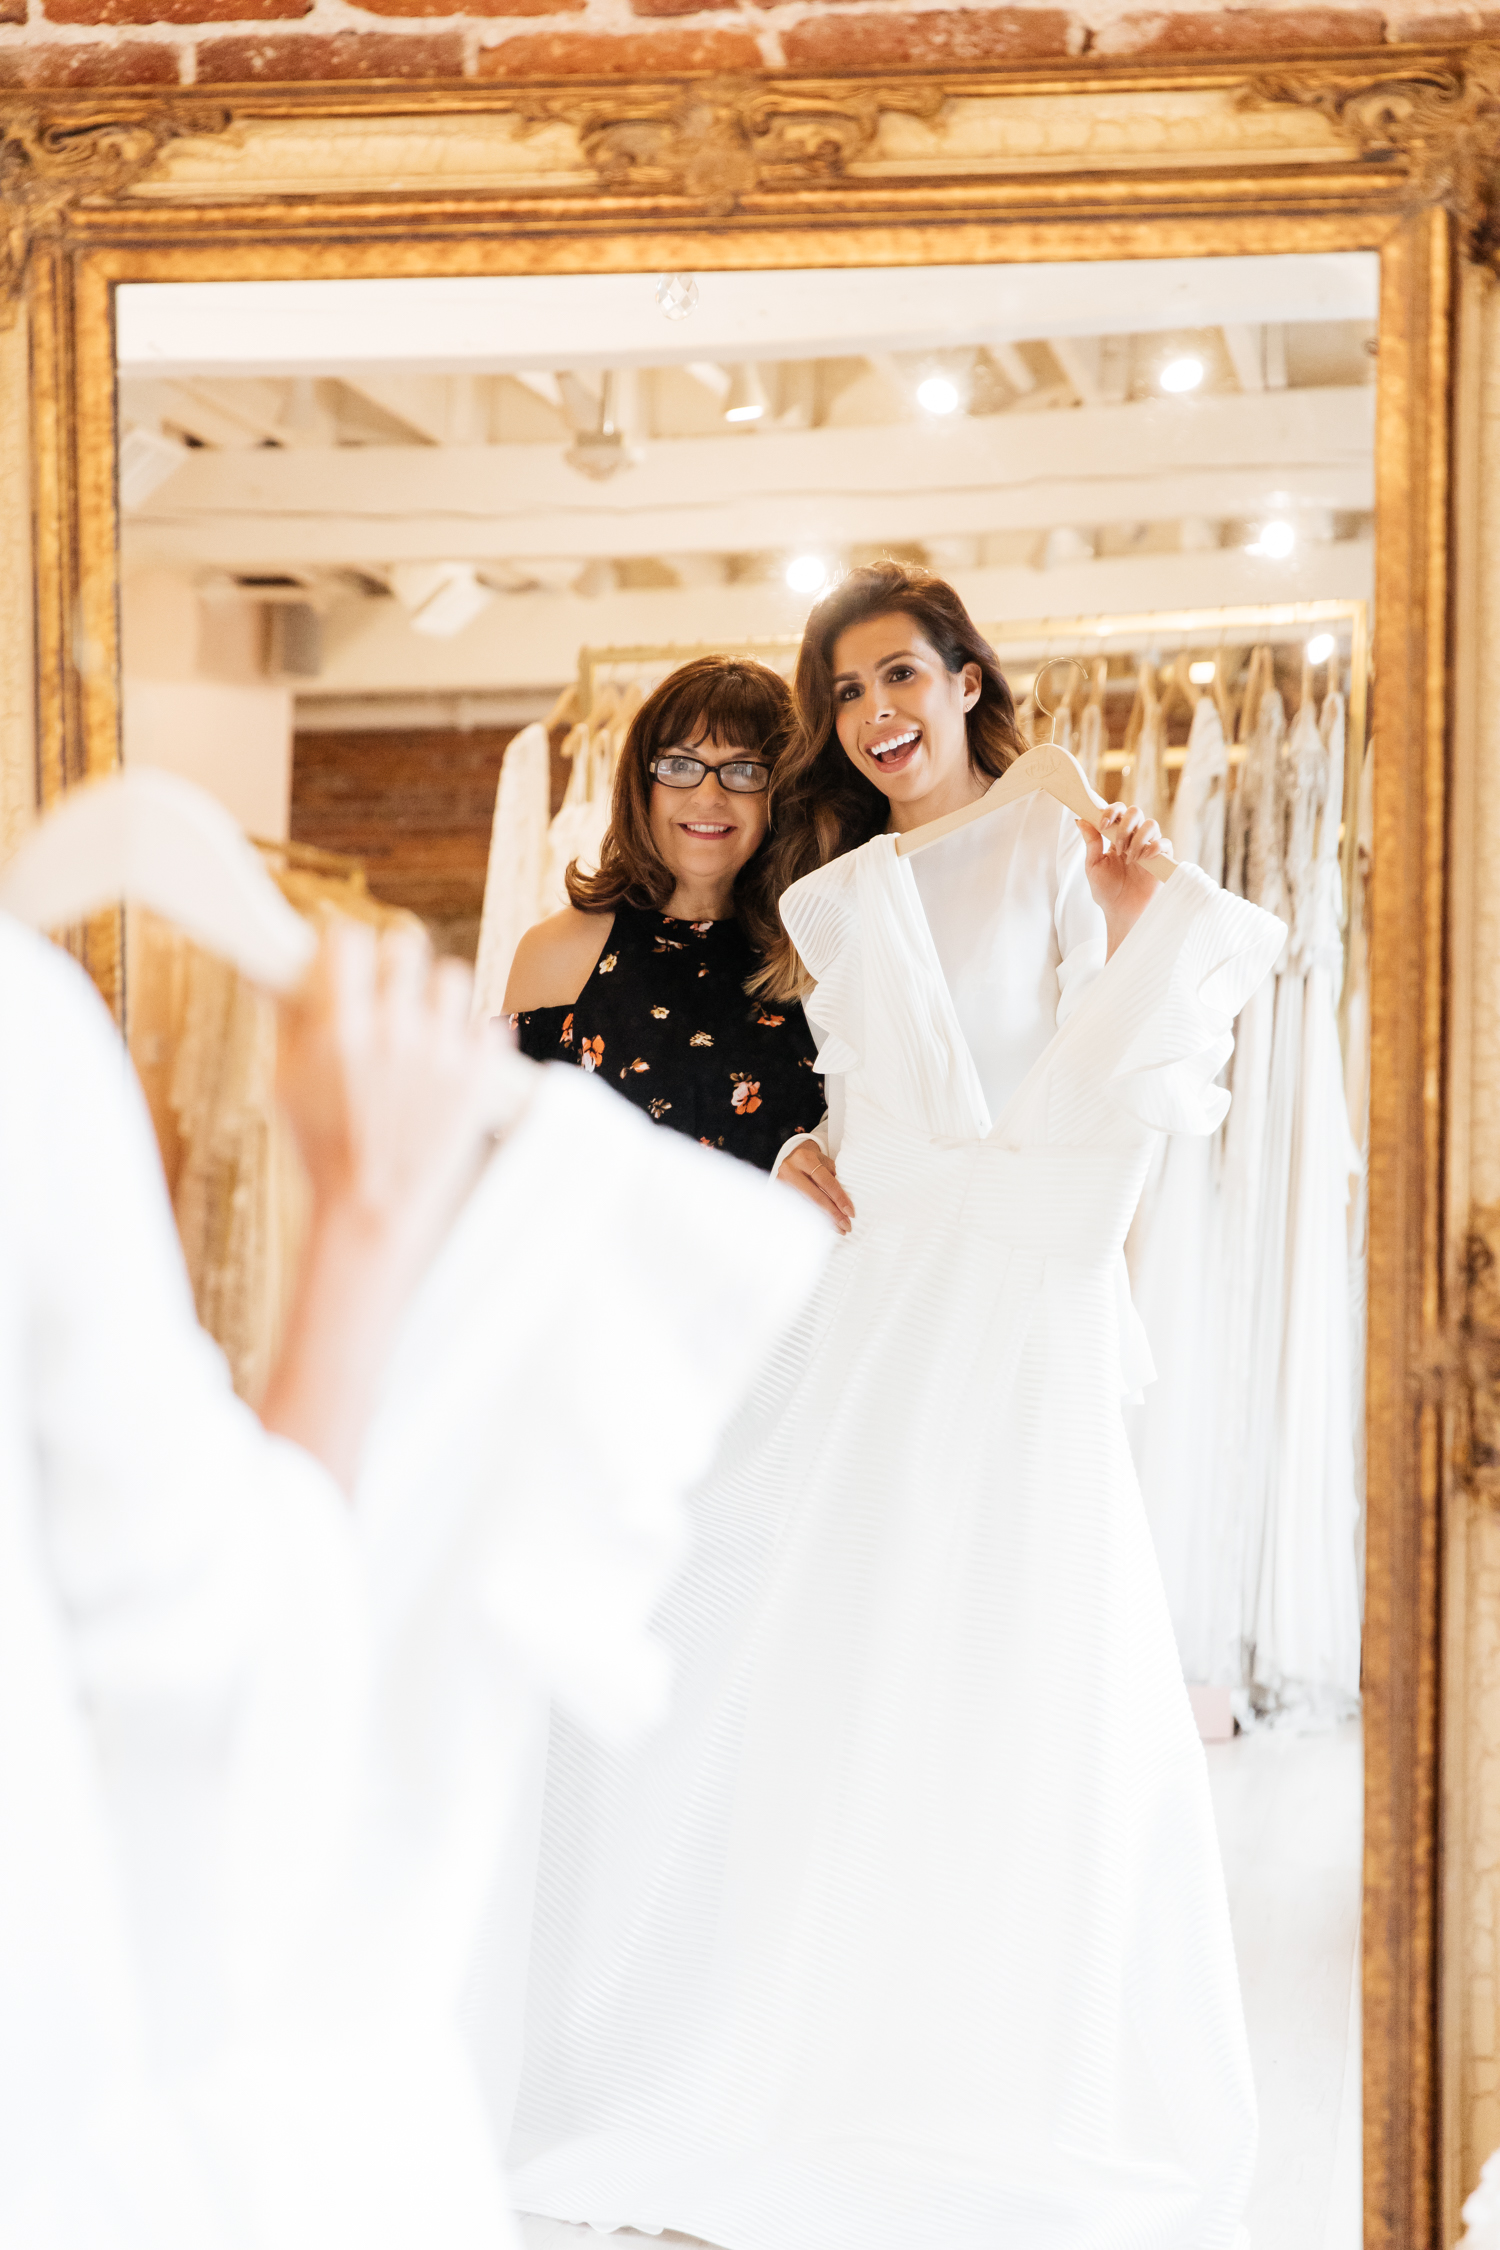 Wedding Dress Shopping at Lovely Bride Los Angeles